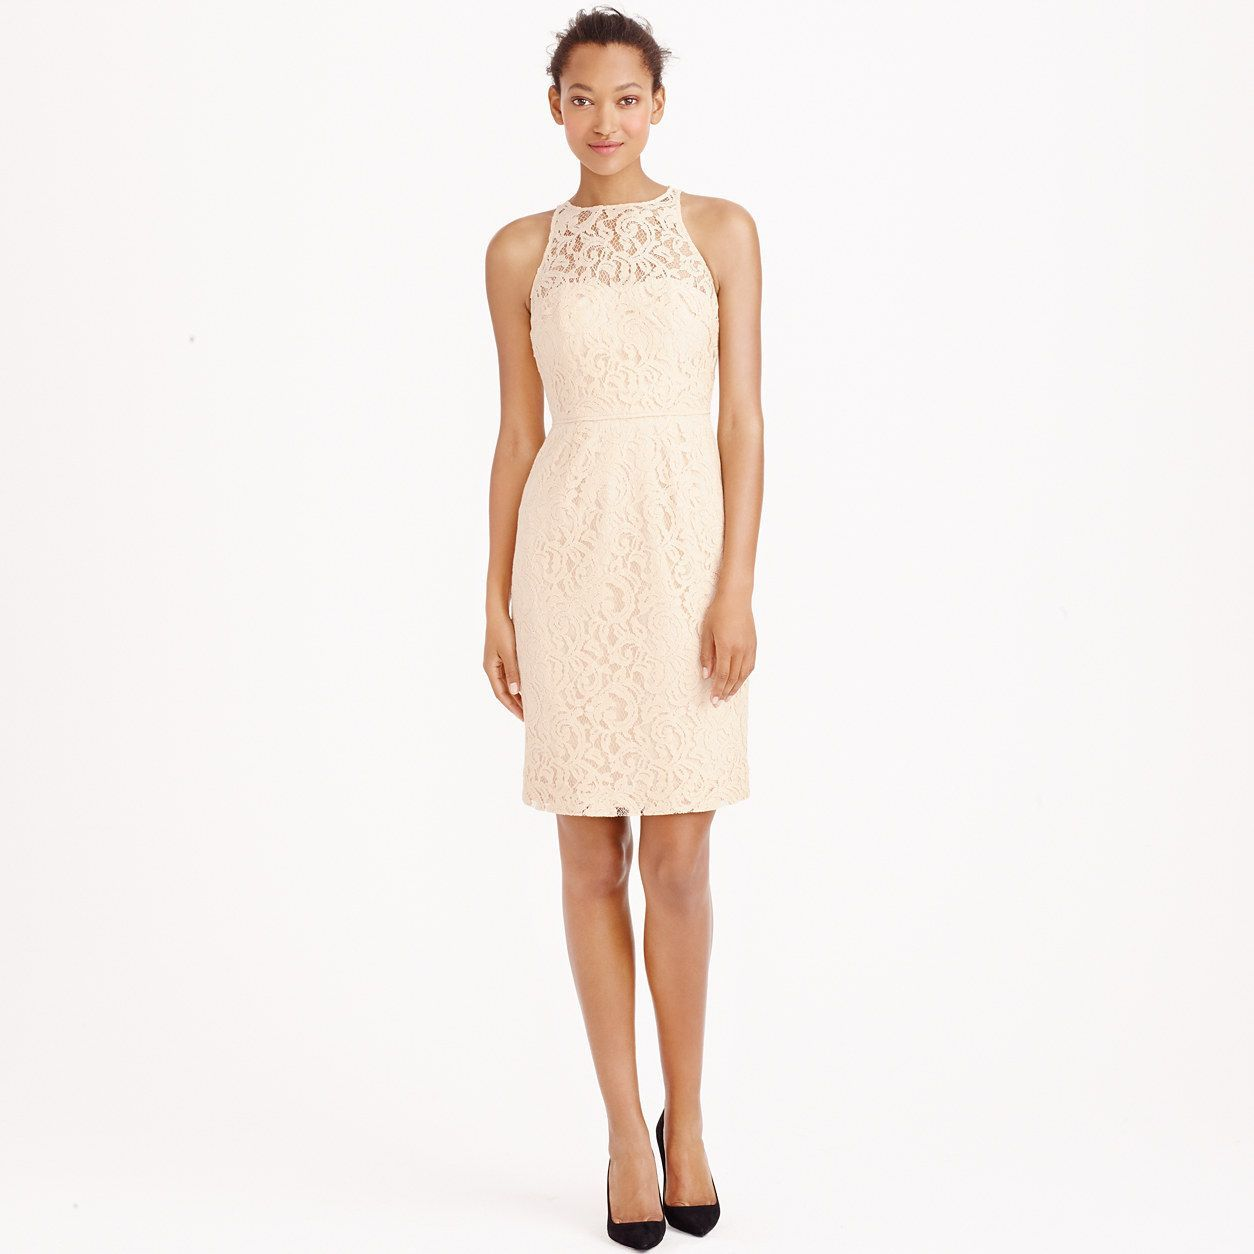 Pamela dress in leavers lace lace bridesmaids wedding and wedding